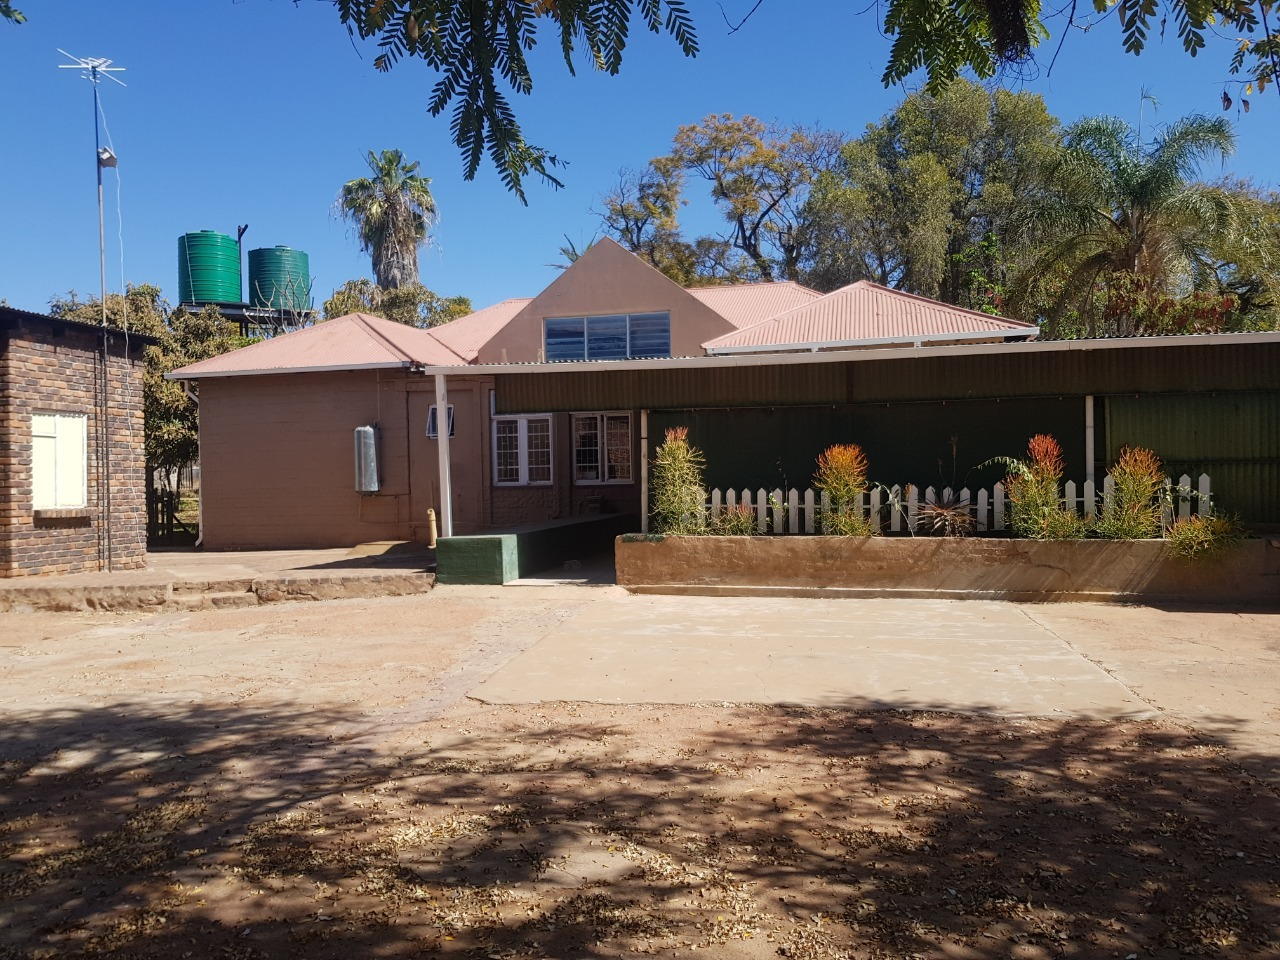 4 Bedroom House To Rent in Lephalale Rural